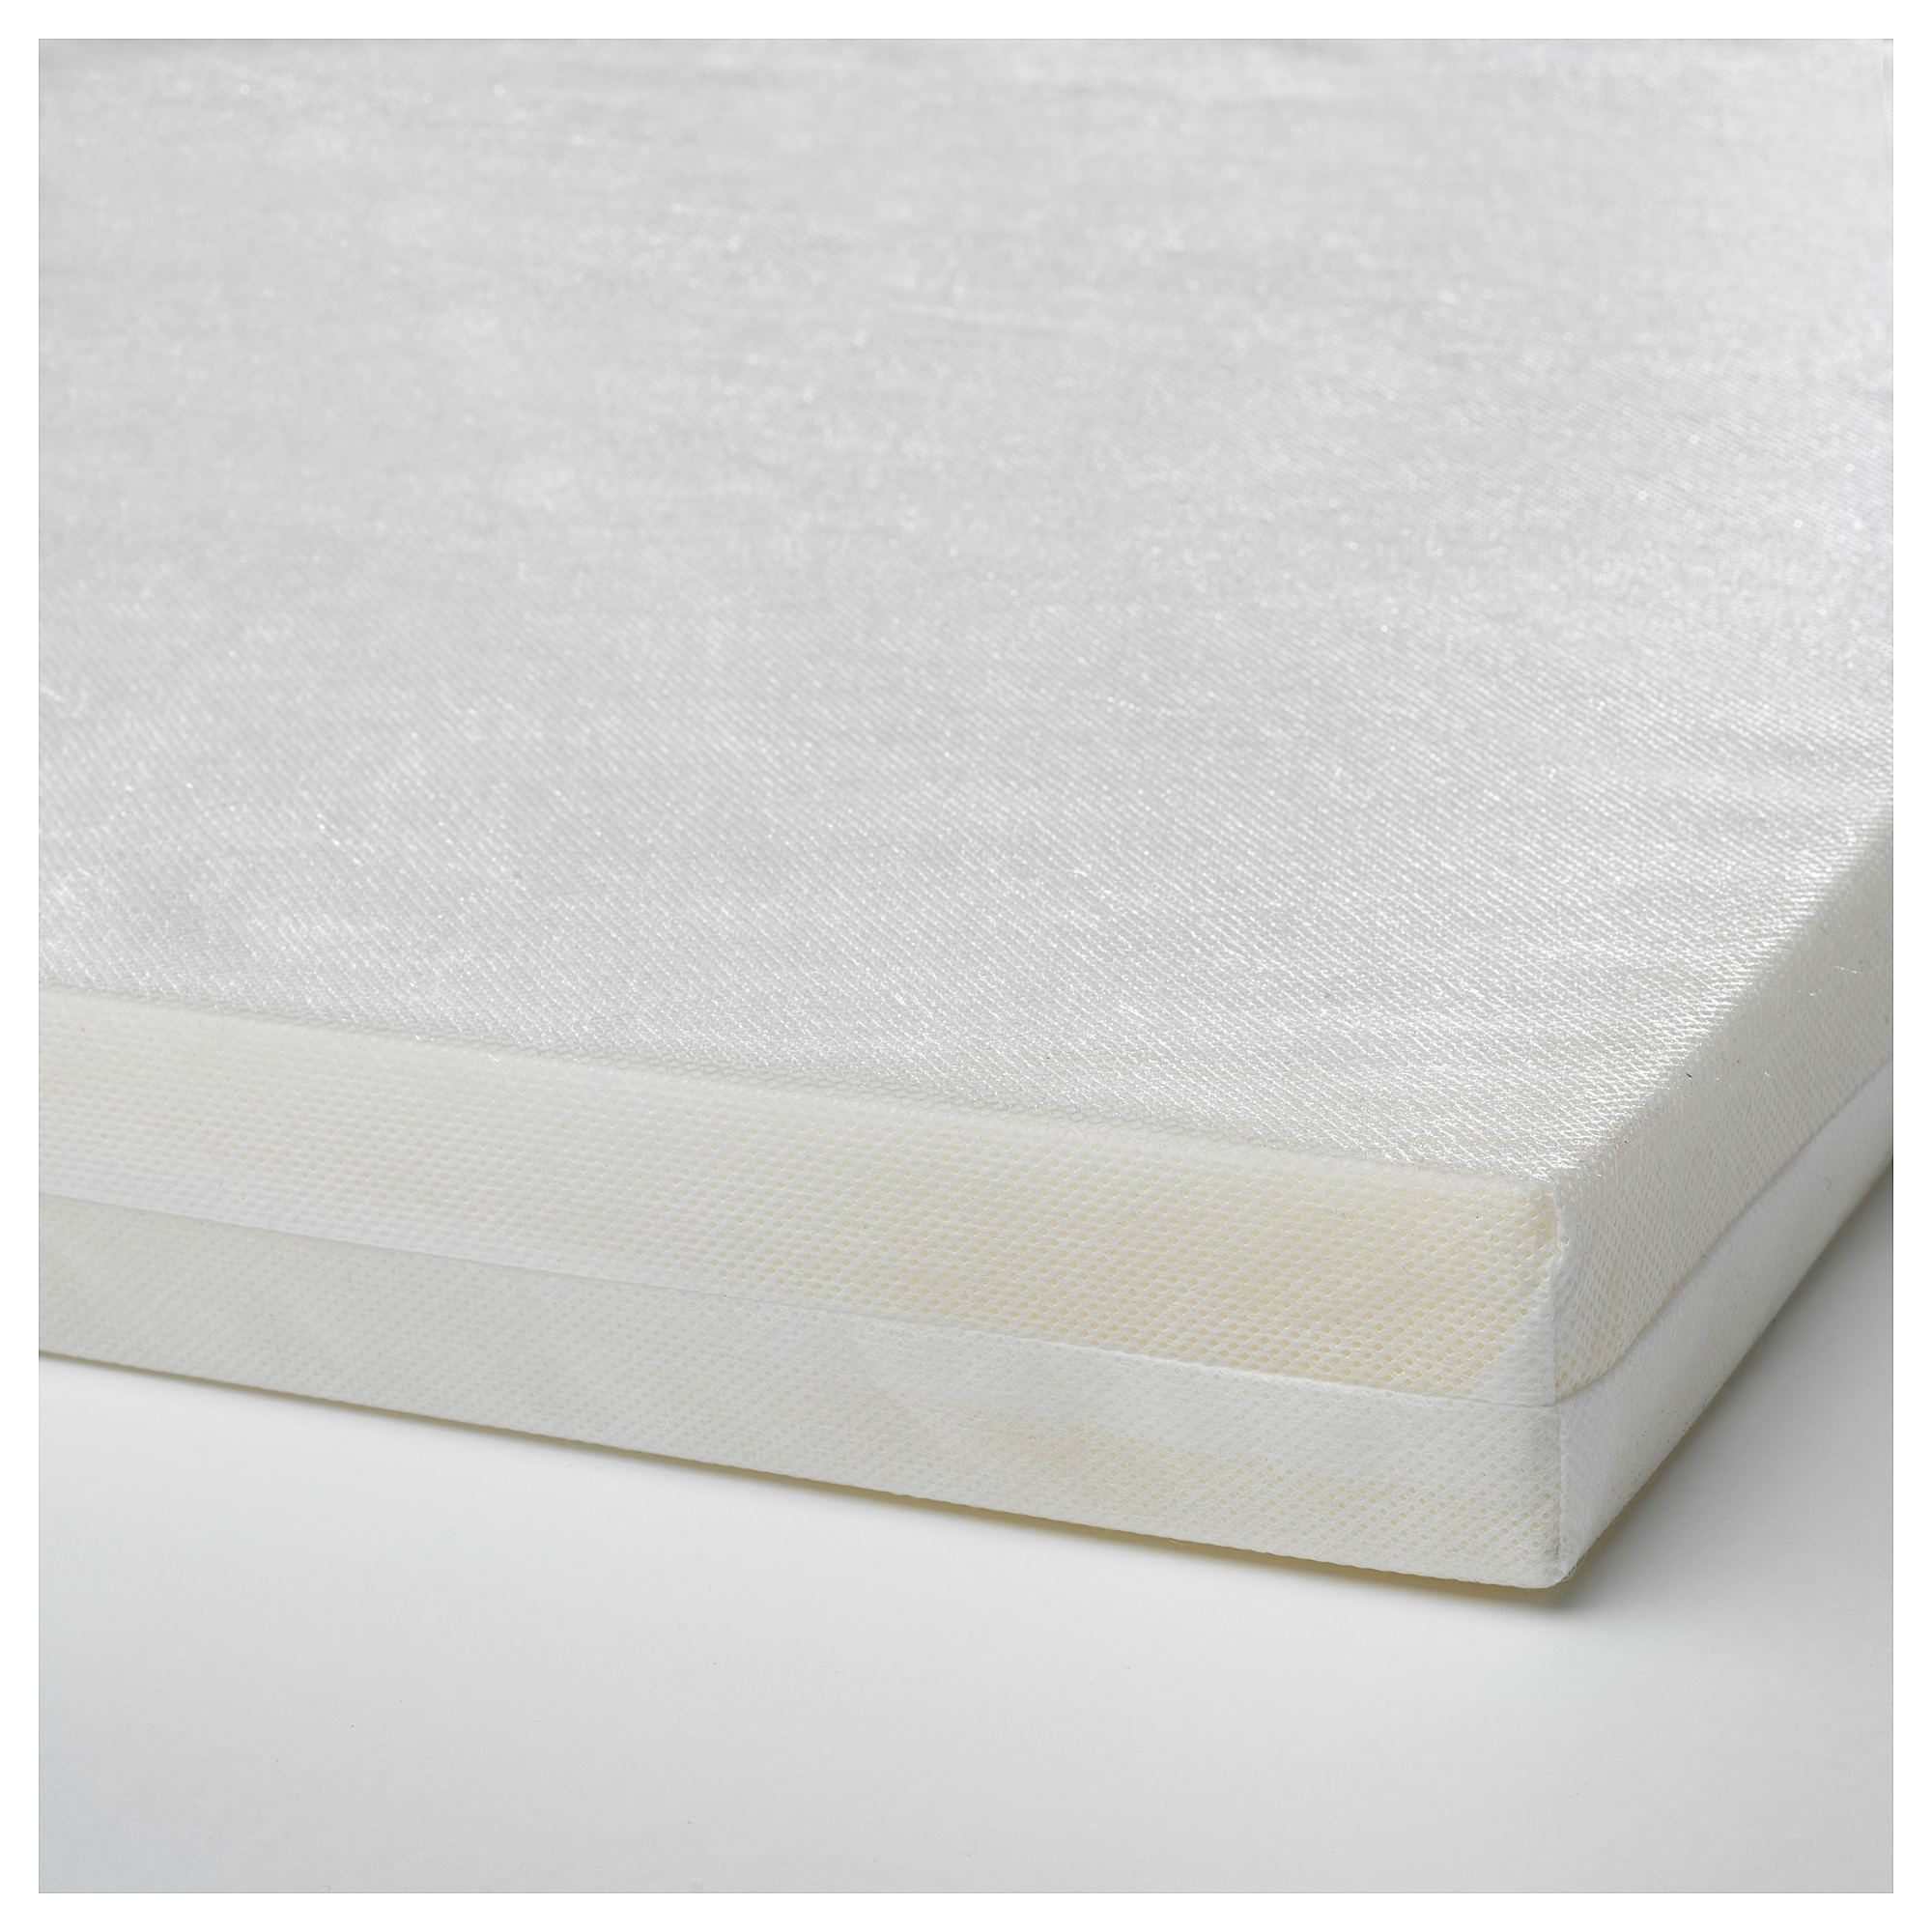 Mattress Cot Pluttig Foam Mattress For Cot